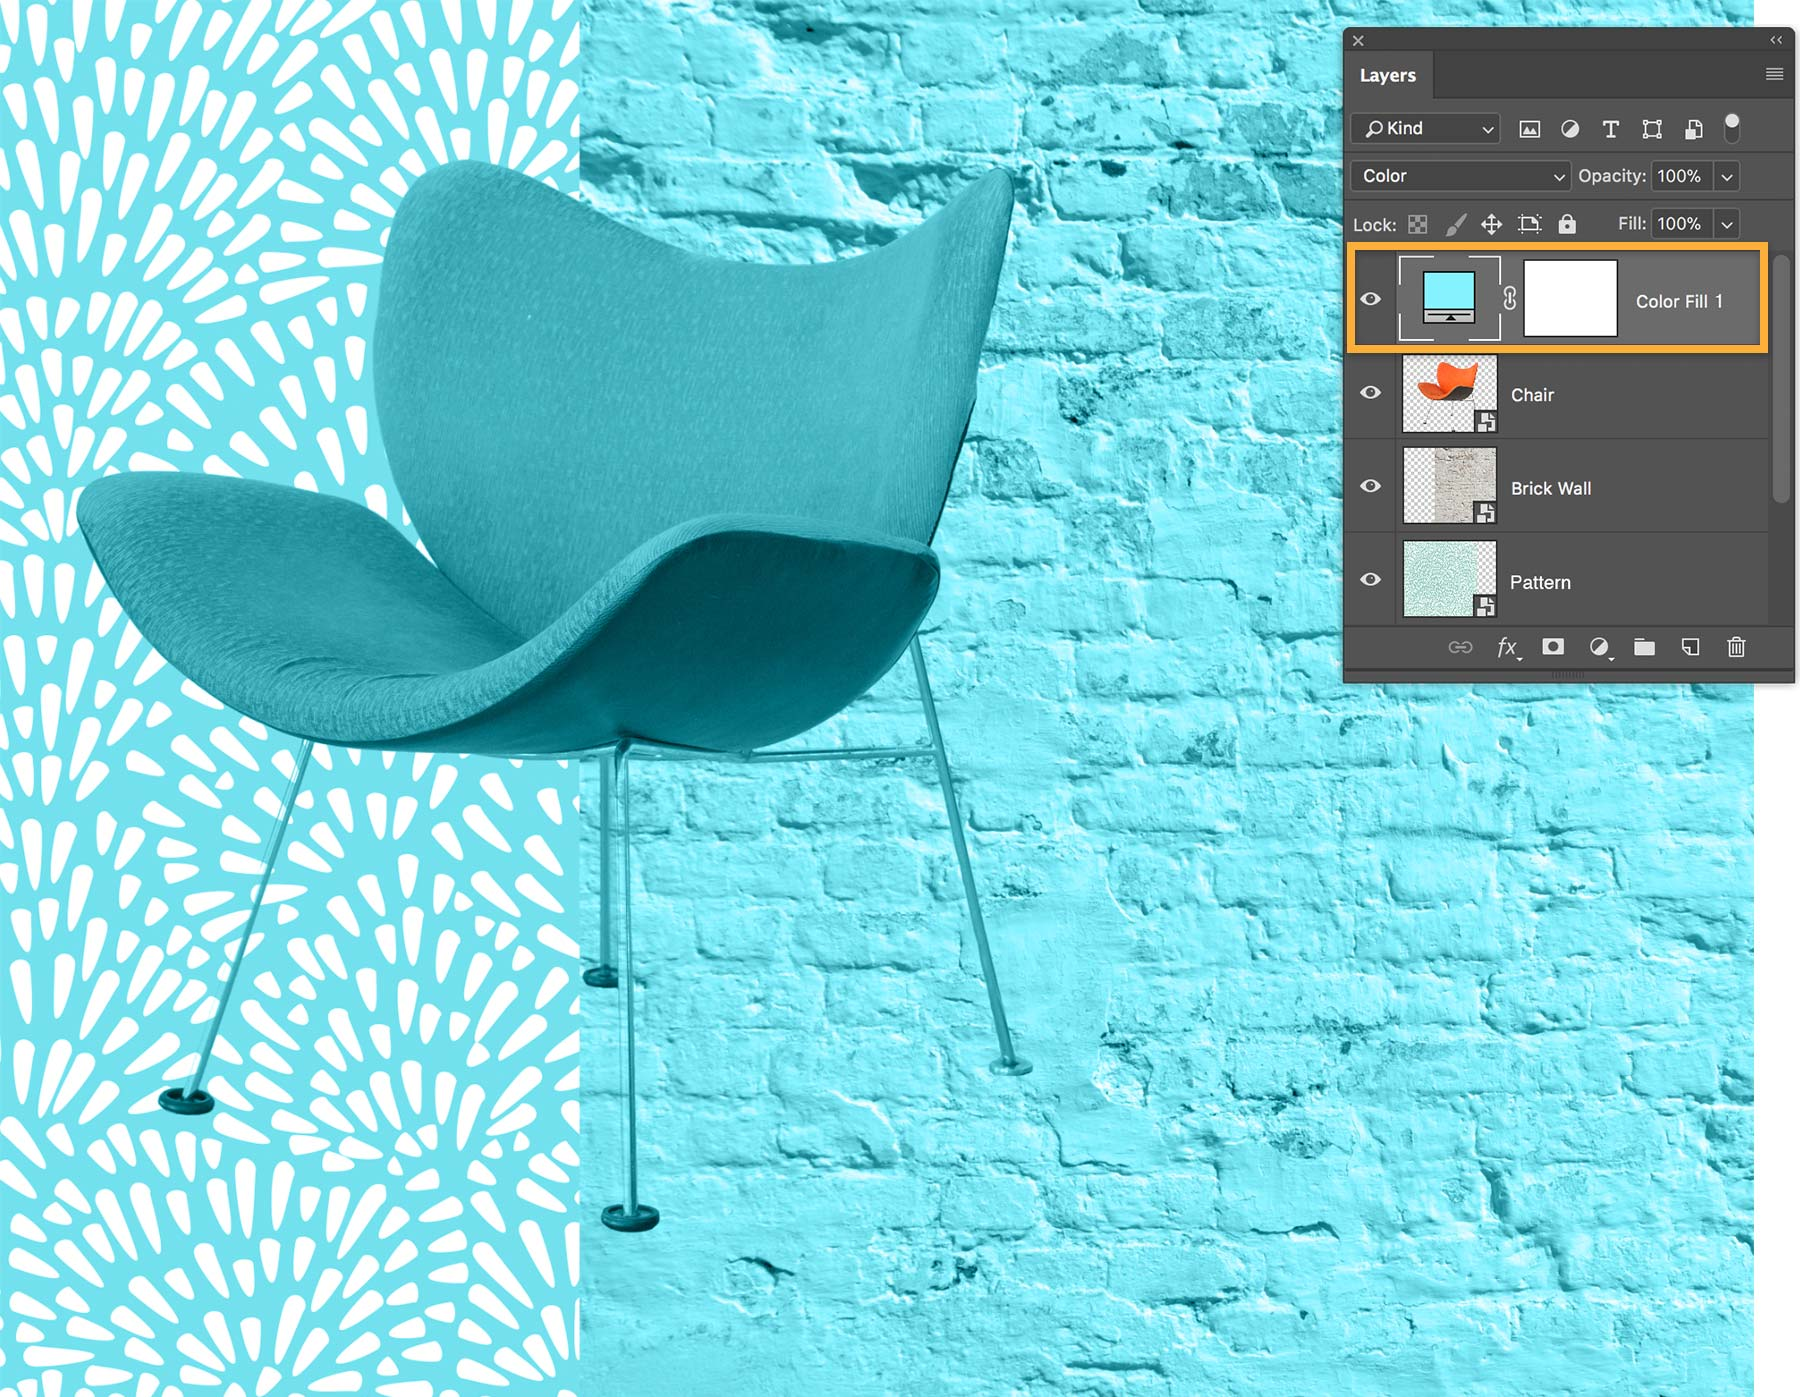 add-color-fill-layers_fig4